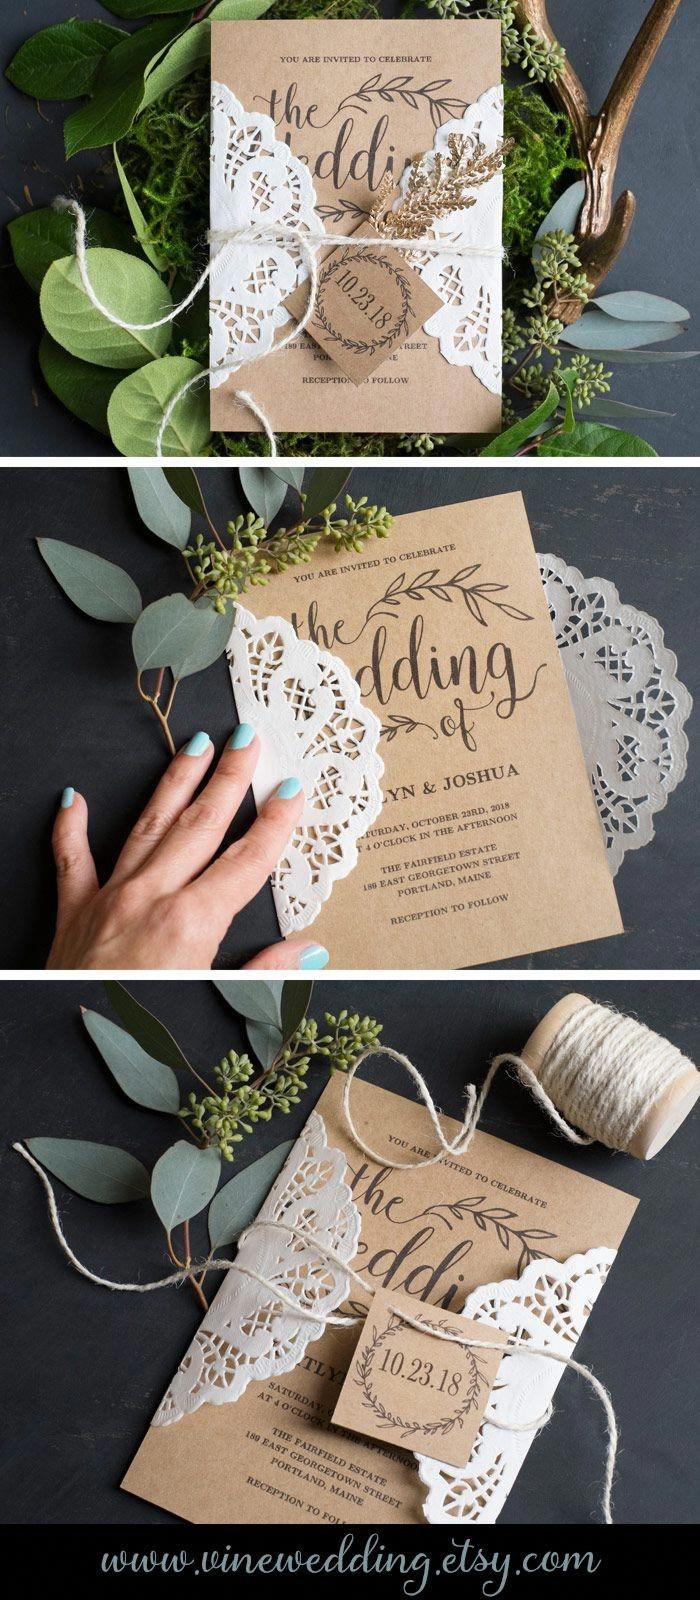 Unique Wedding Ideas On A Budget Martha Stewart Weddings How To Rustic Wedding Invitation Set Affordable Diy Wedding Vintage Wedding Invitations Templates